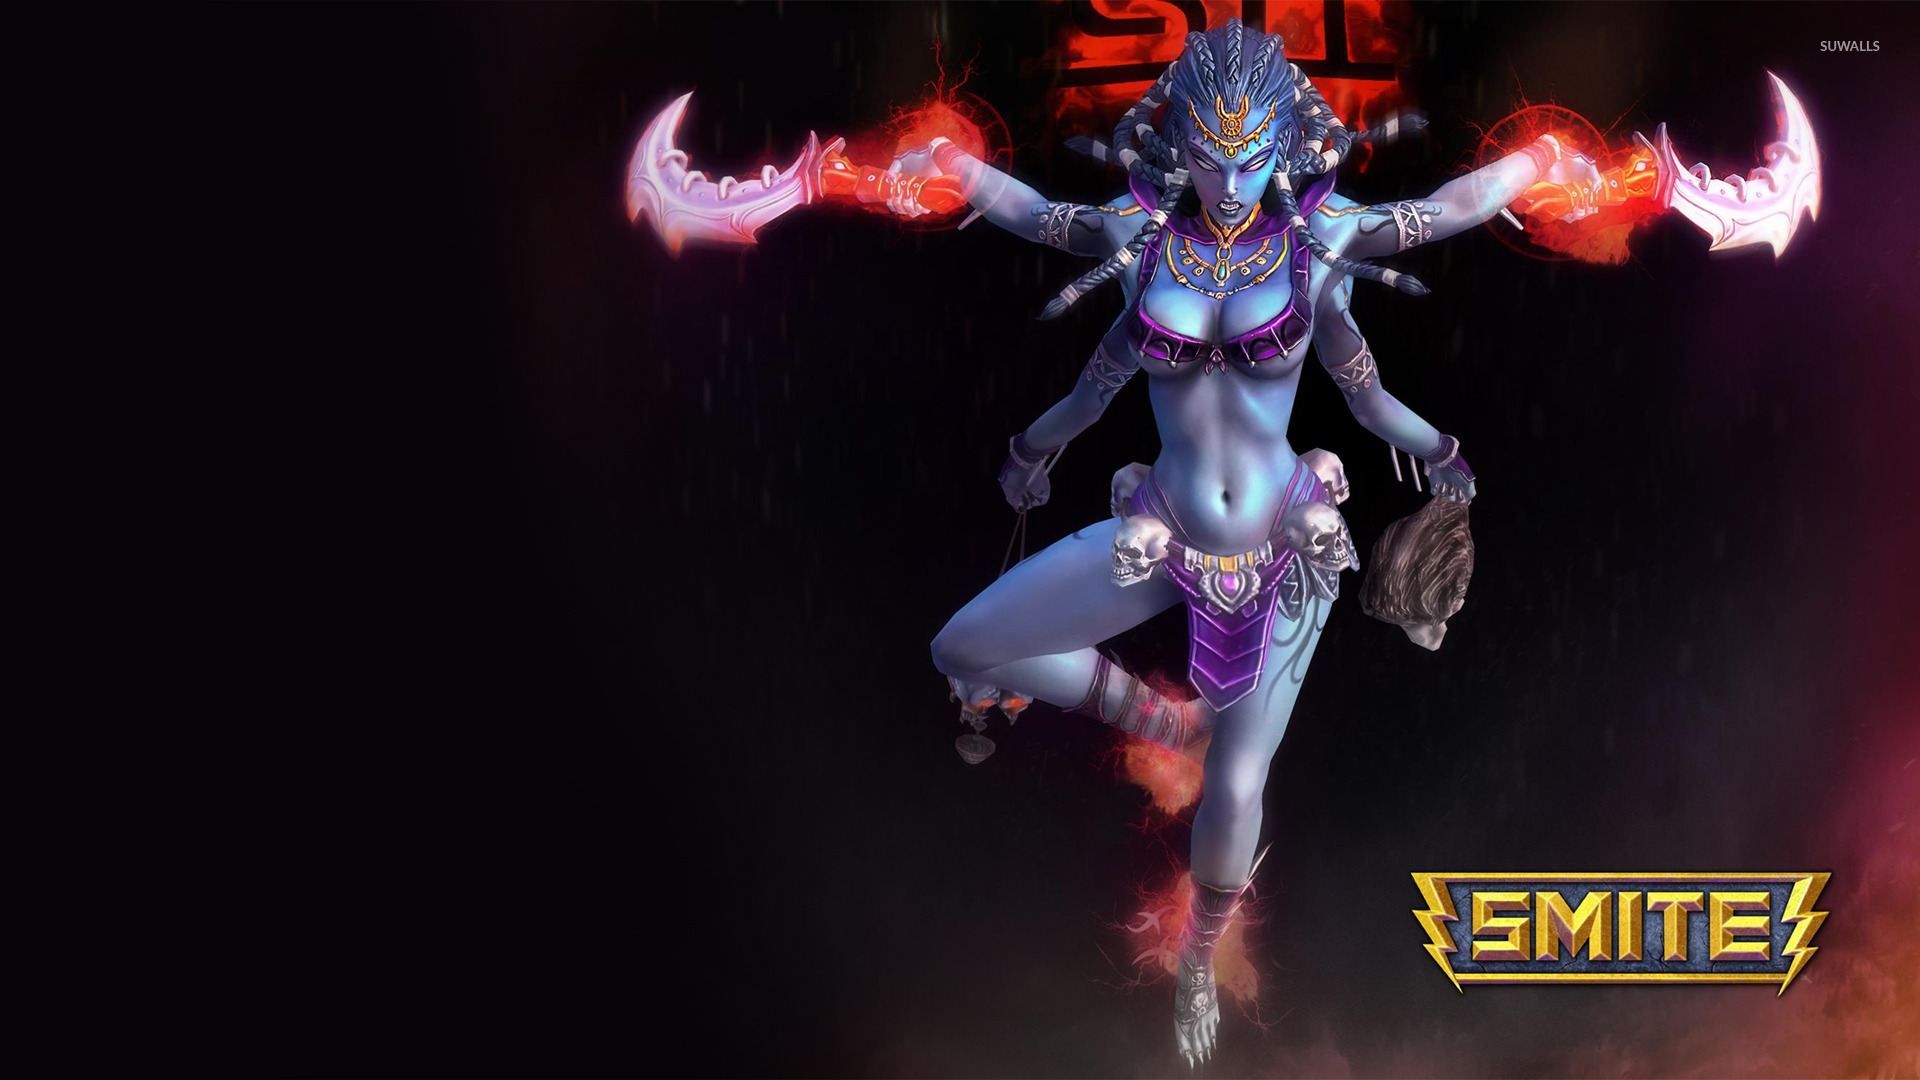 maa kali wallpaper 1920x1080